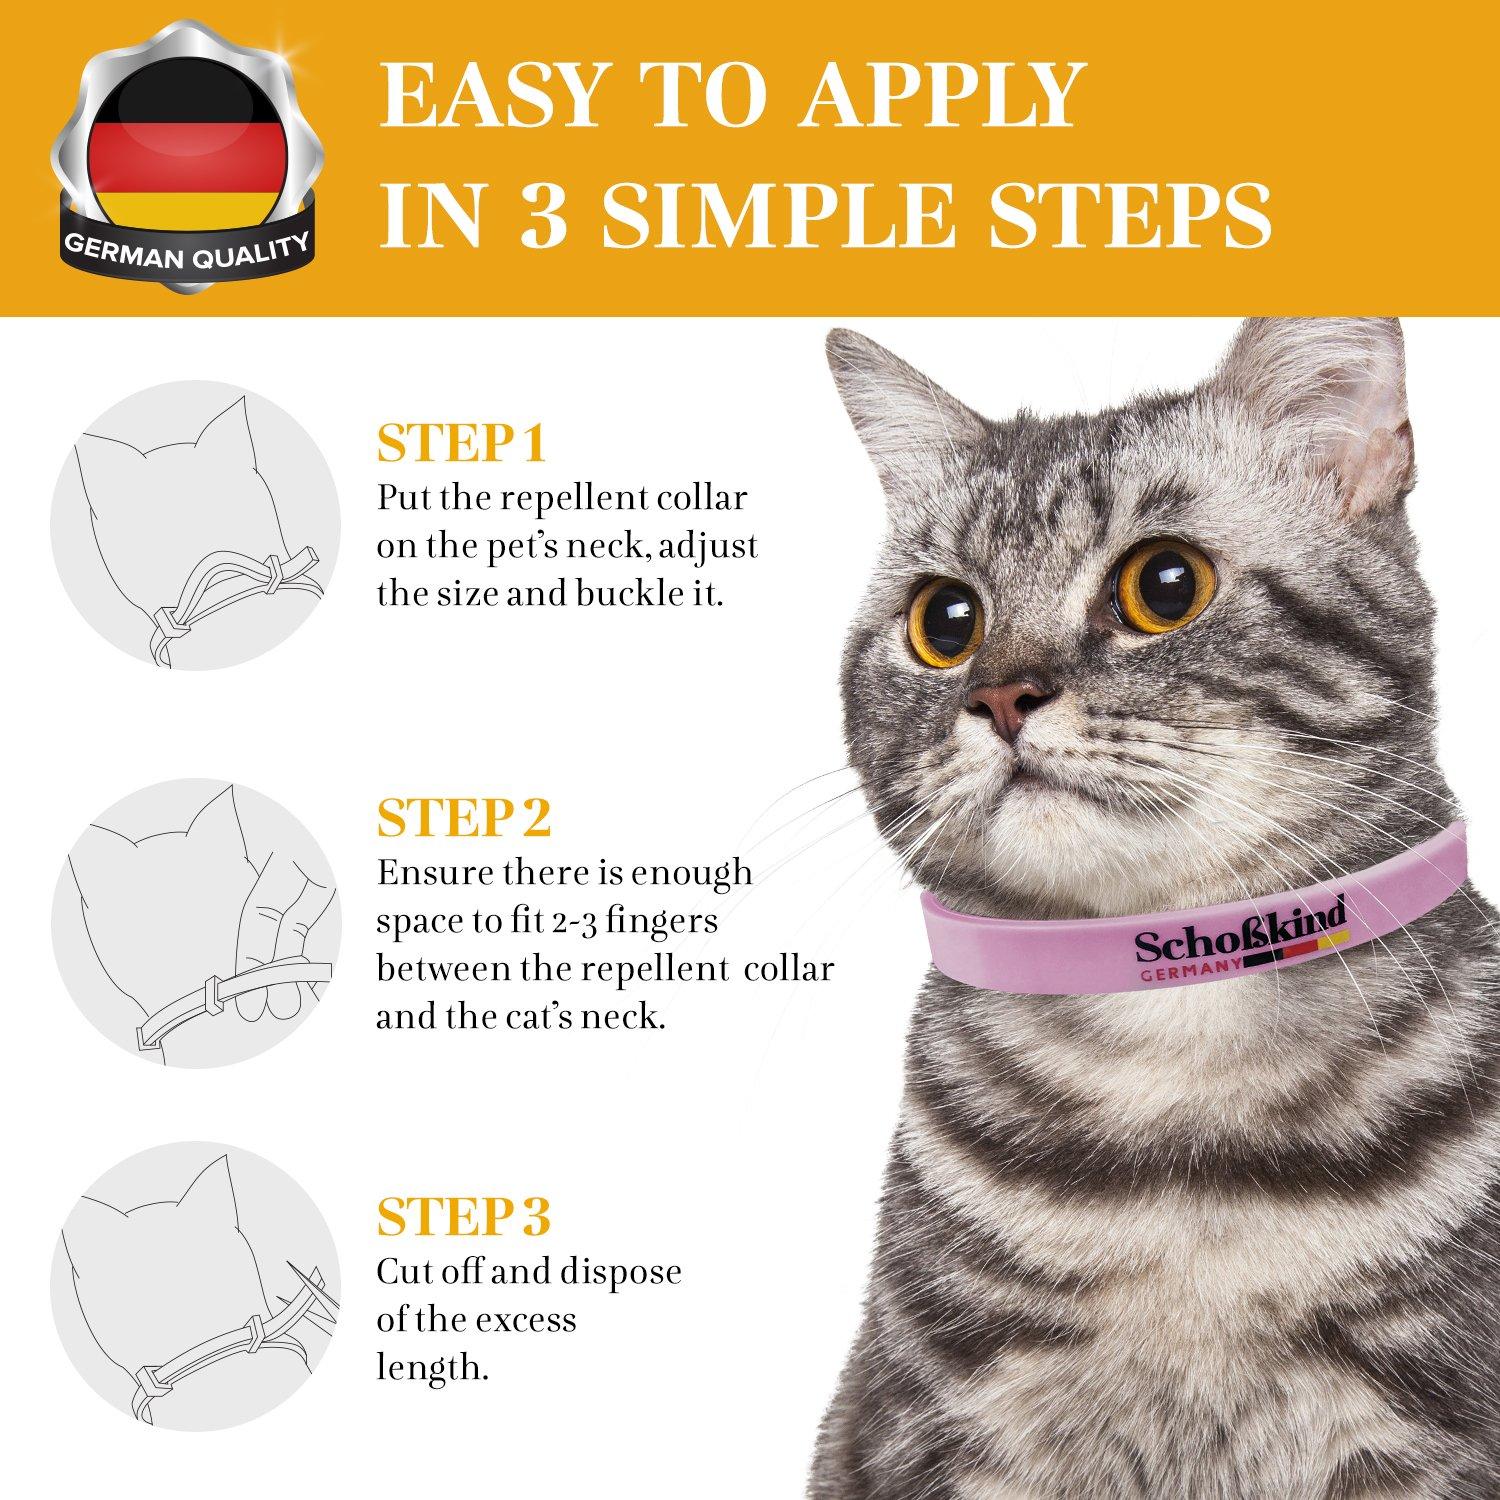 Flea Collar - Tick Collar for Cats - Made for Germany - 100% Safe & Eco-Friendly - Based on Natural Oils - Flea and Tick Prevention Pets - 6-Month Protection - Waterproof Cat Flea Collar (Pink) by Organic Way (Image #3)